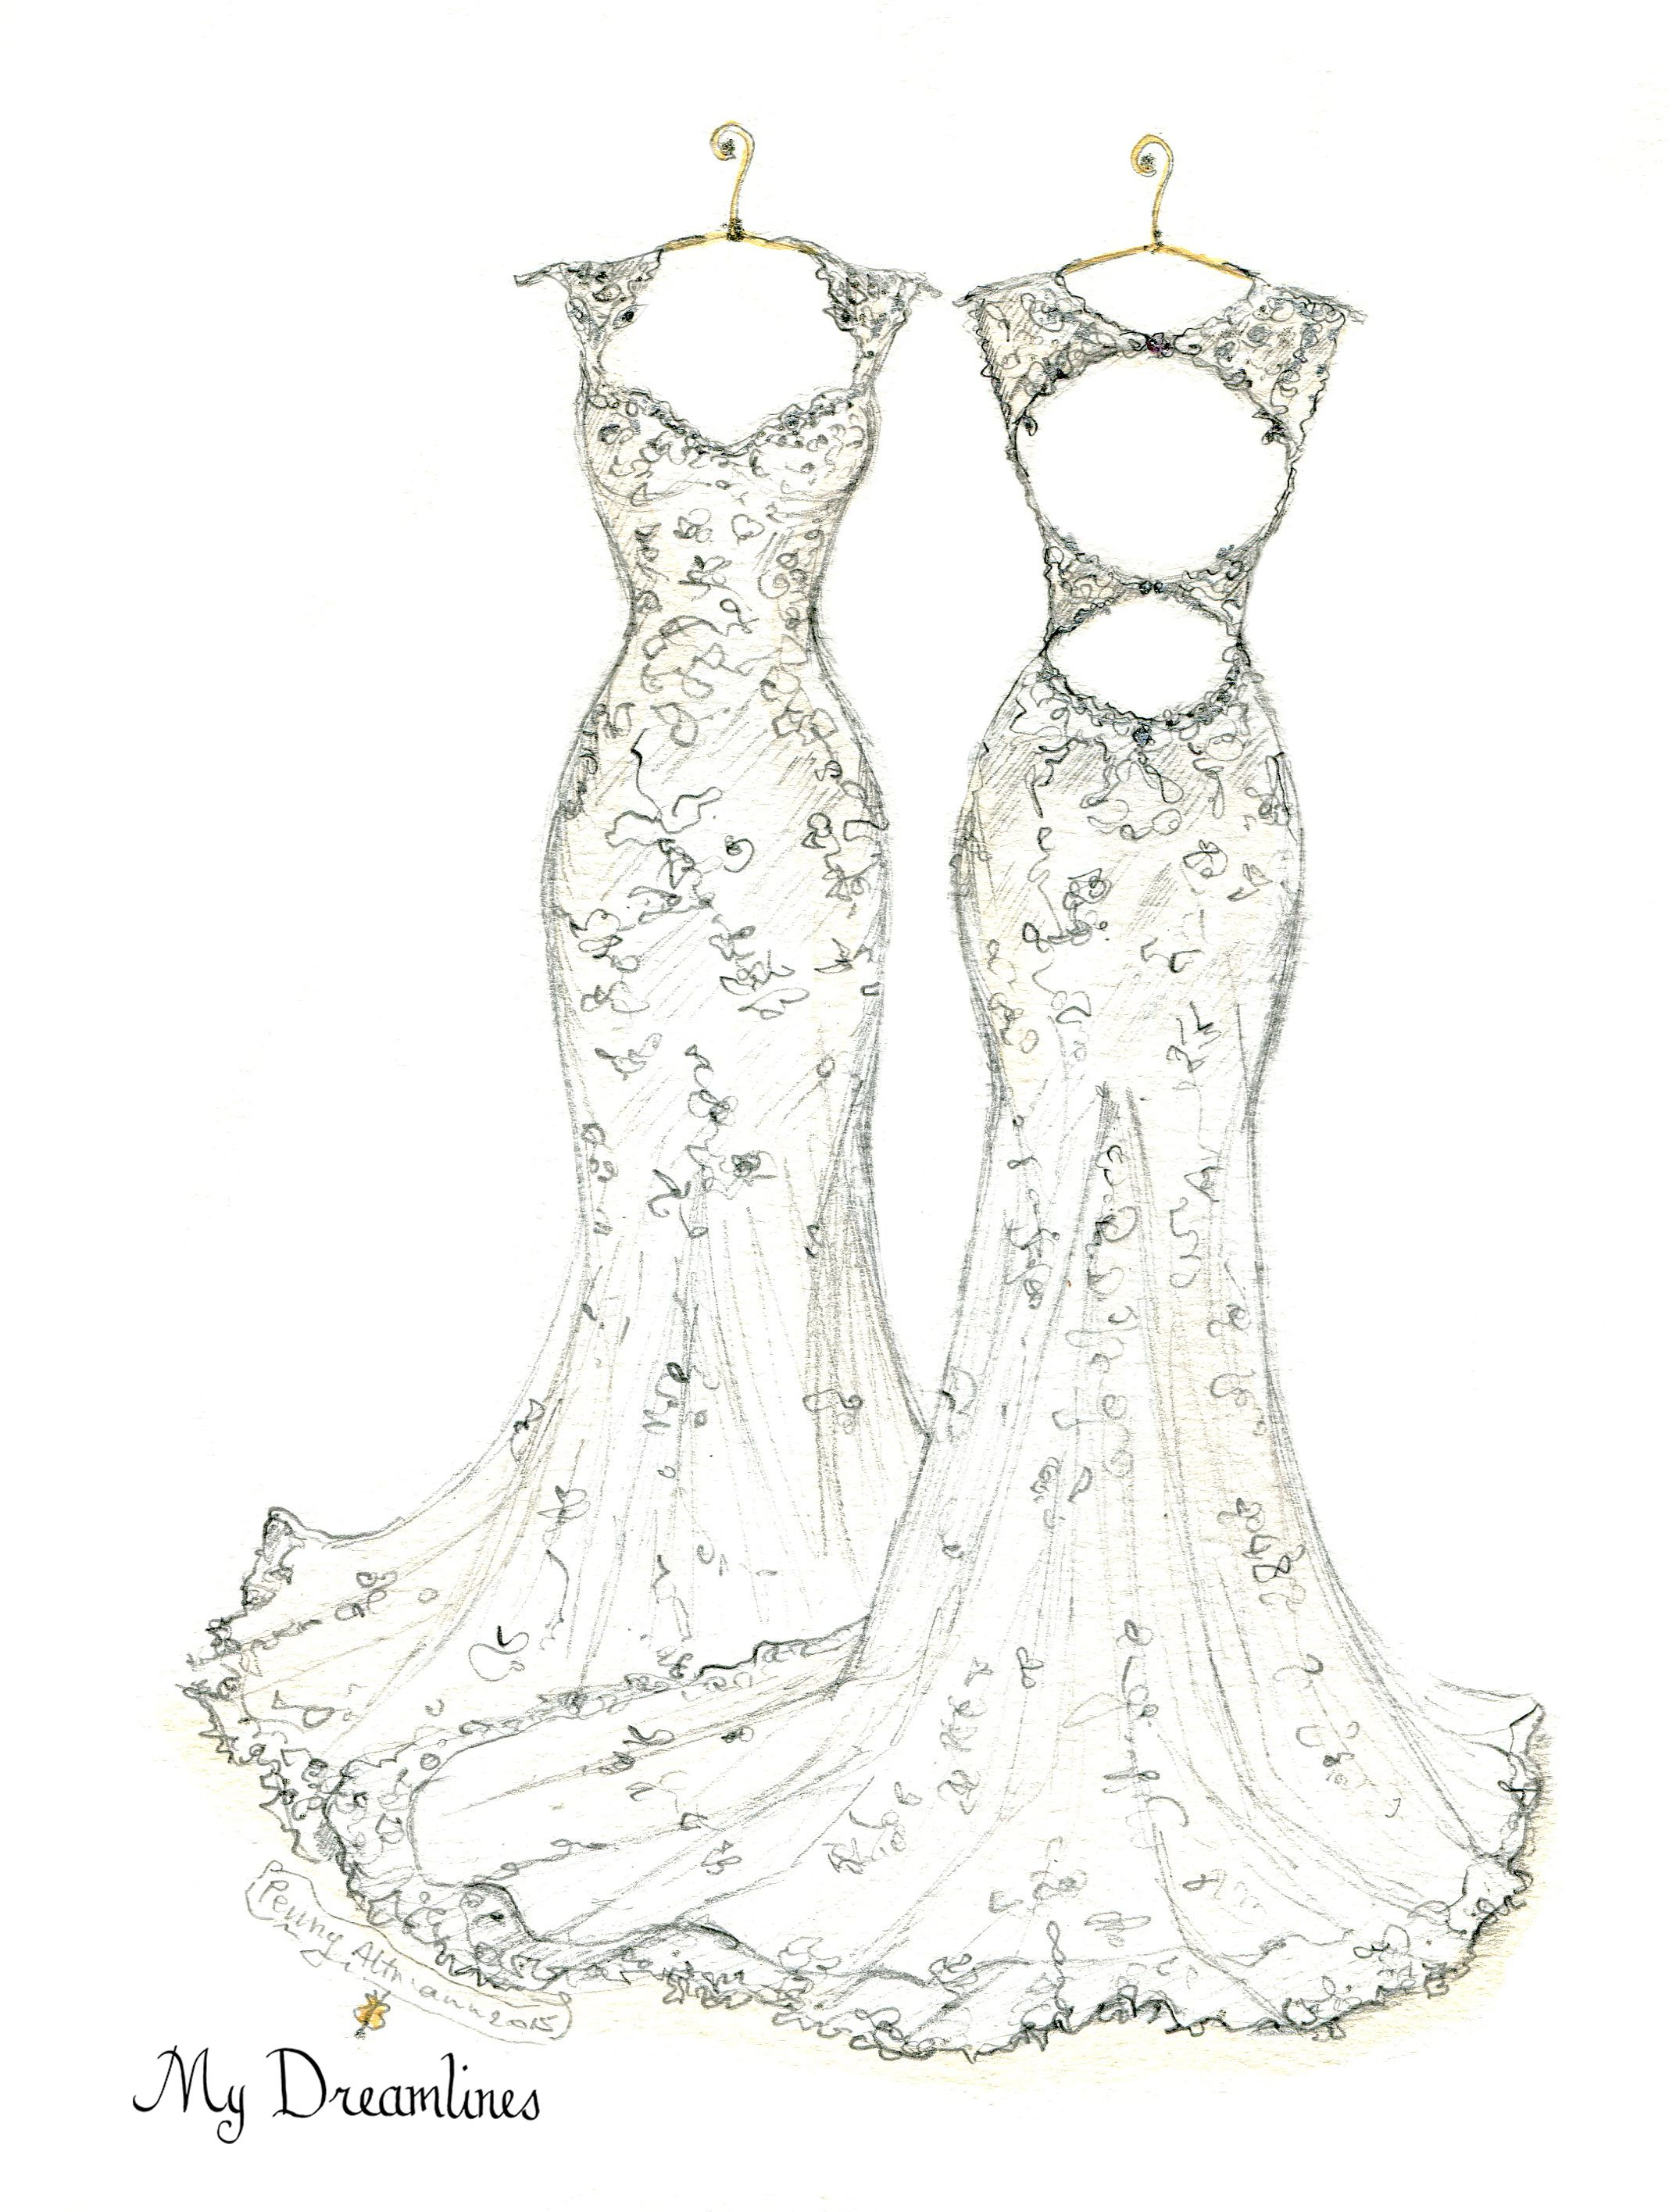 Personal Wedding Dress Sketch | Anniversary Gift | Wedding Gift ...